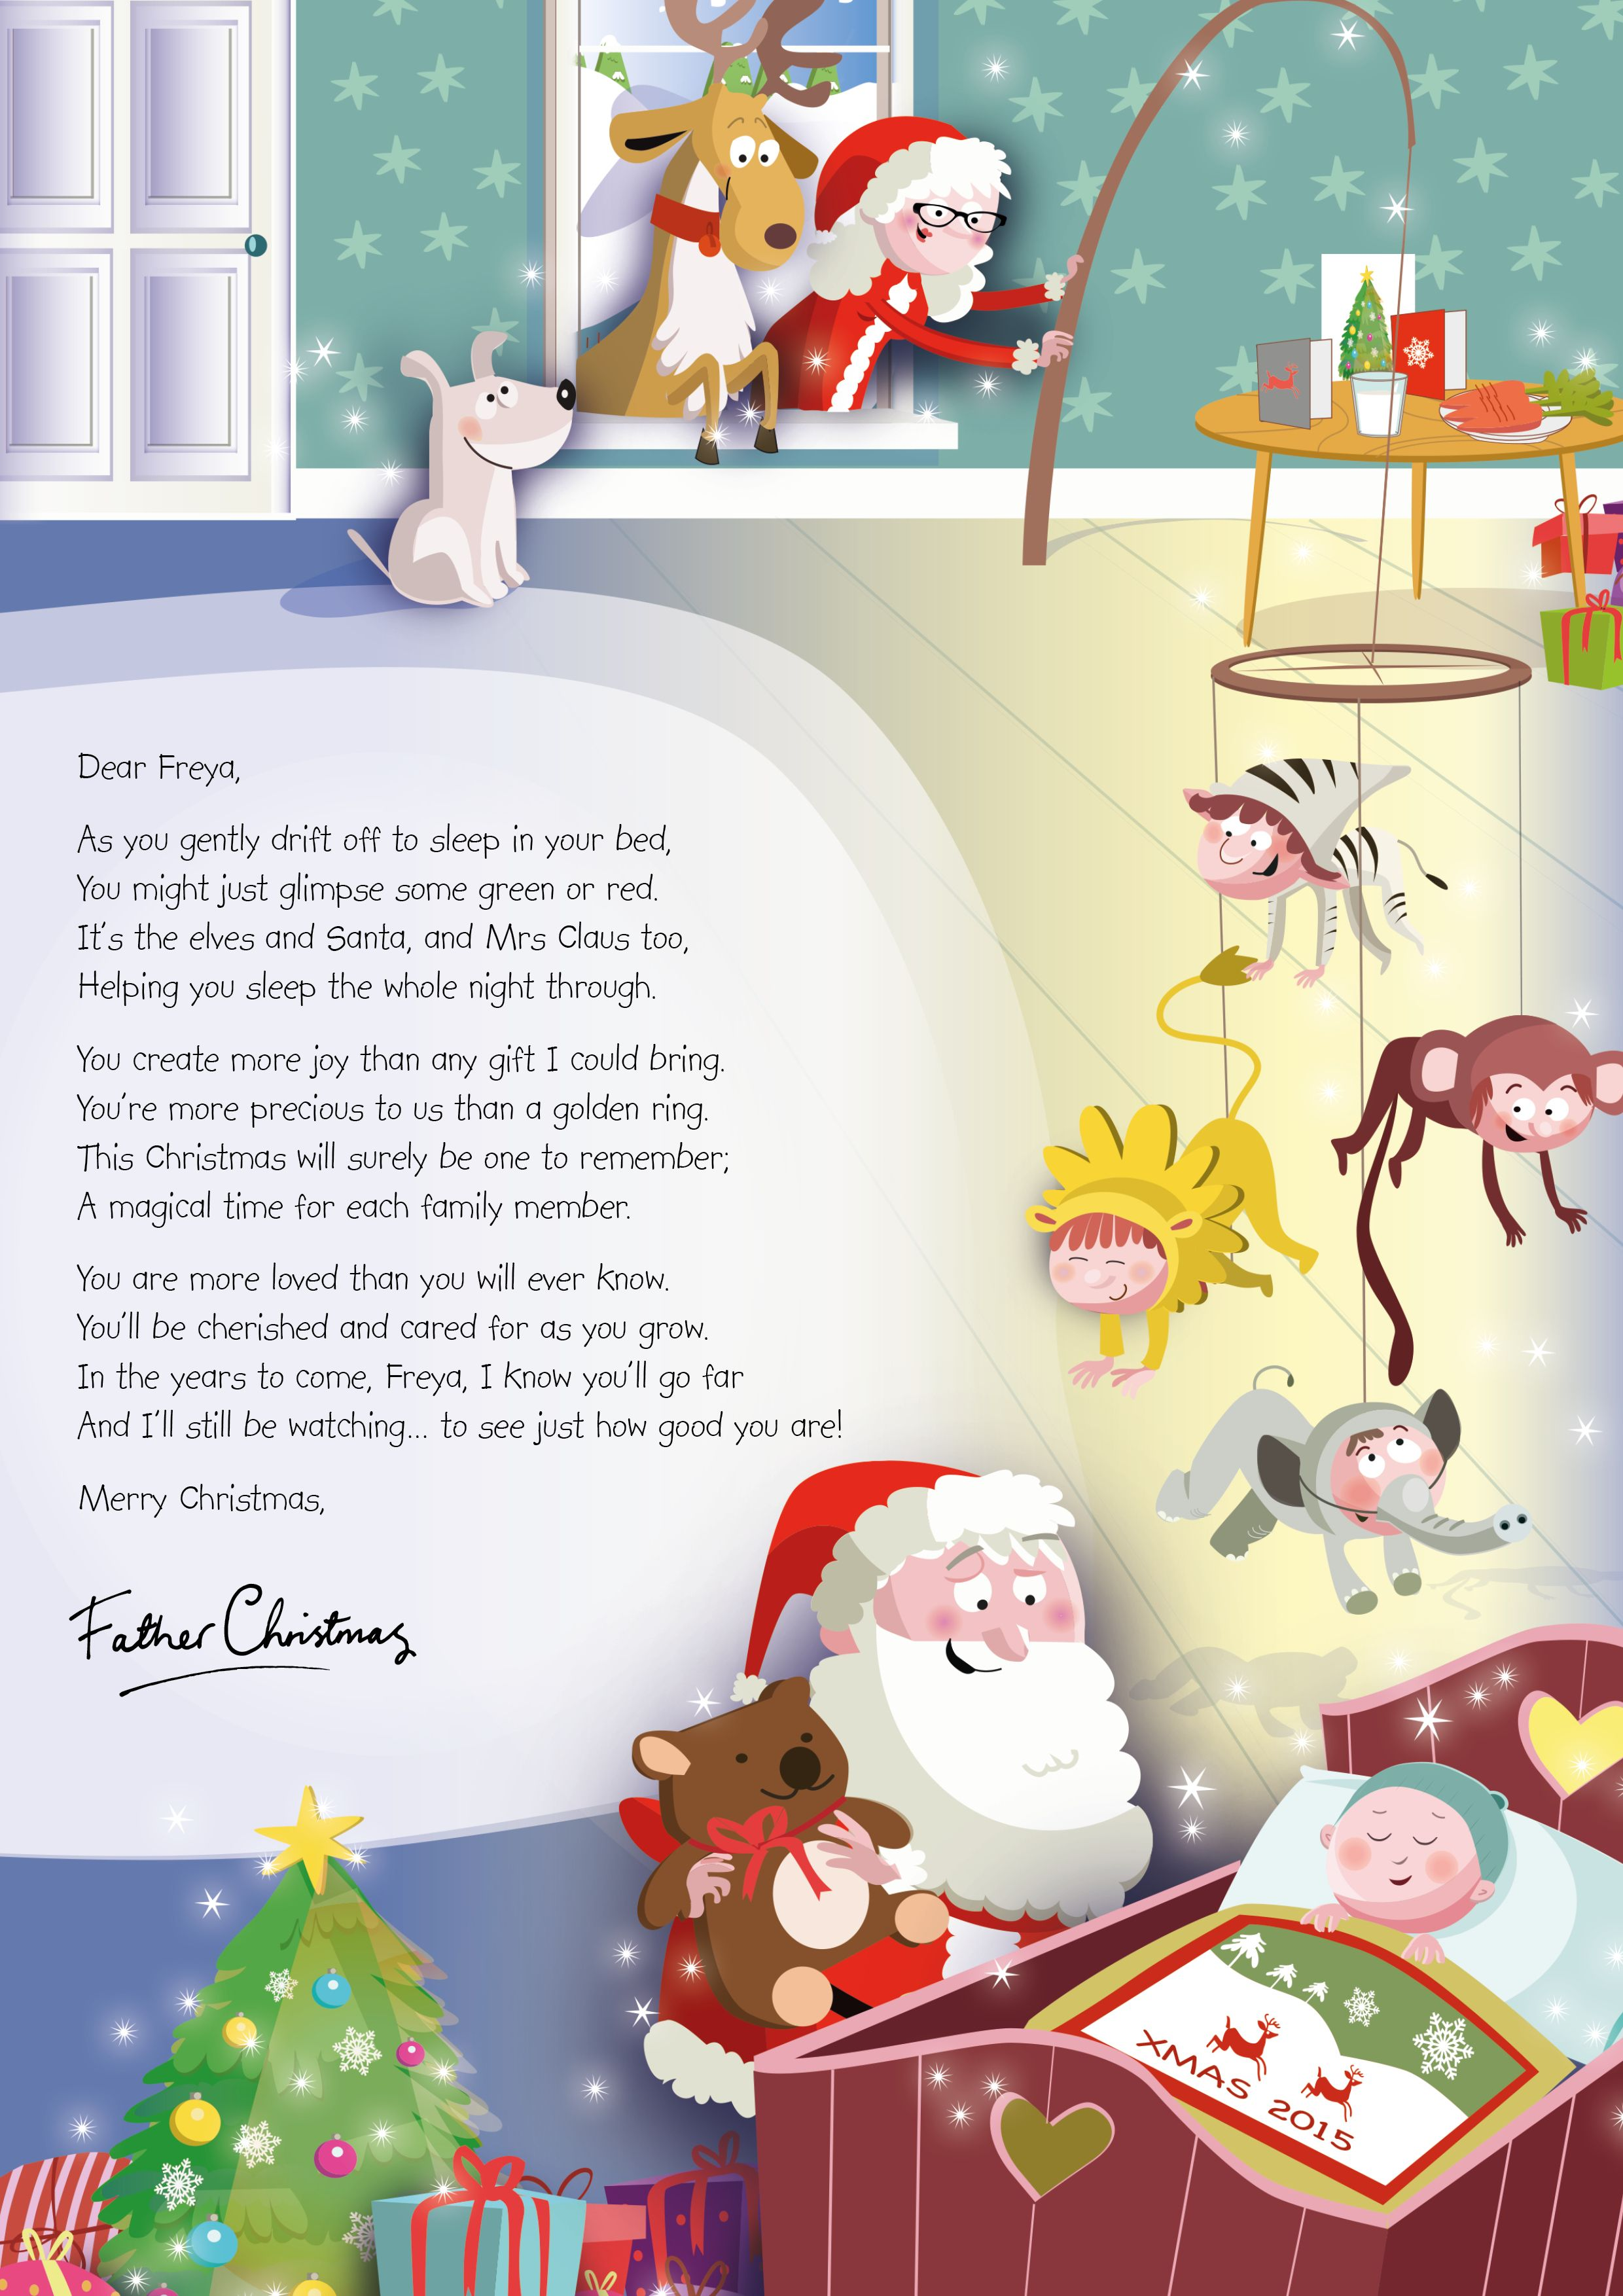 Nspcc letter from santa babys first christmas 2015 httpswww nspcc letter from santa babys first christmas 2015 httpswww spiritdancerdesigns Images